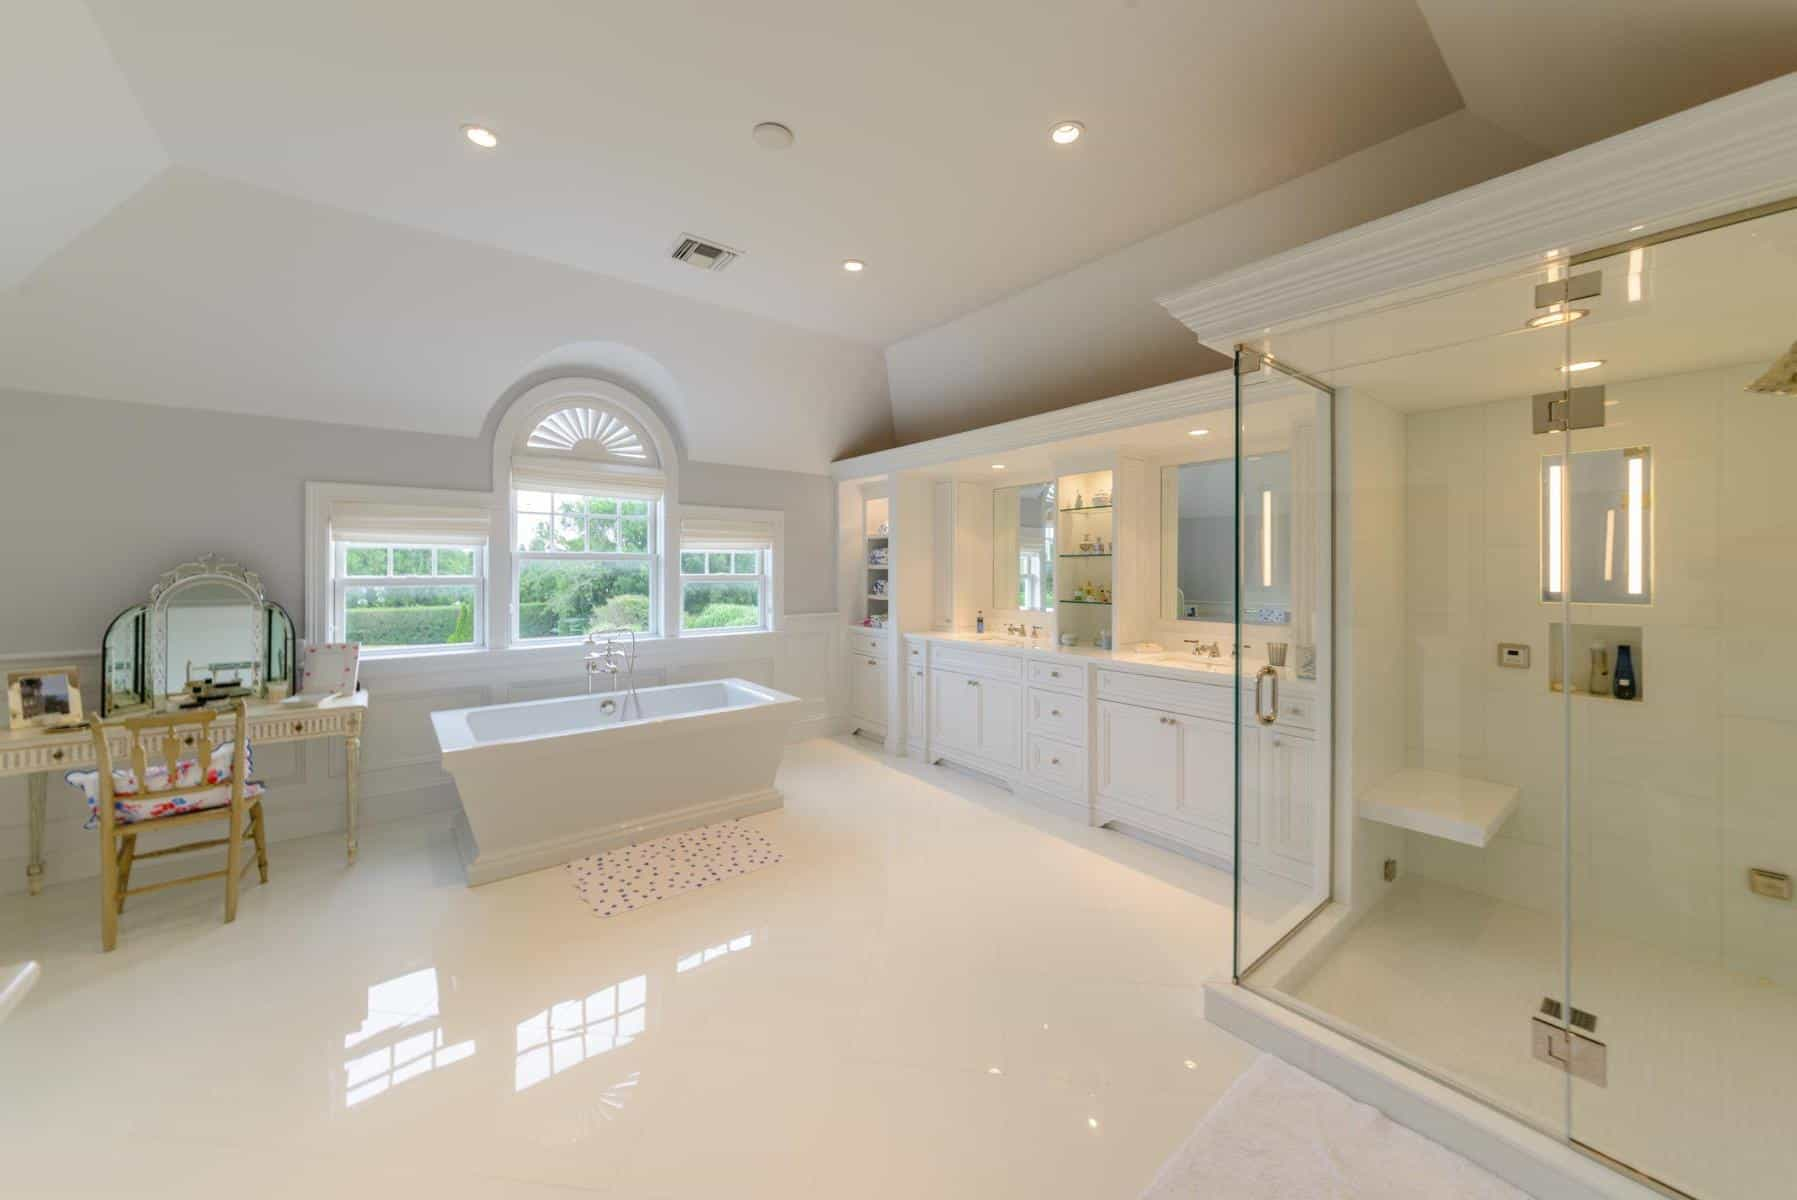 Celebrity Inspired Large Bathroom And Shower Interior (Image 4 of 20)